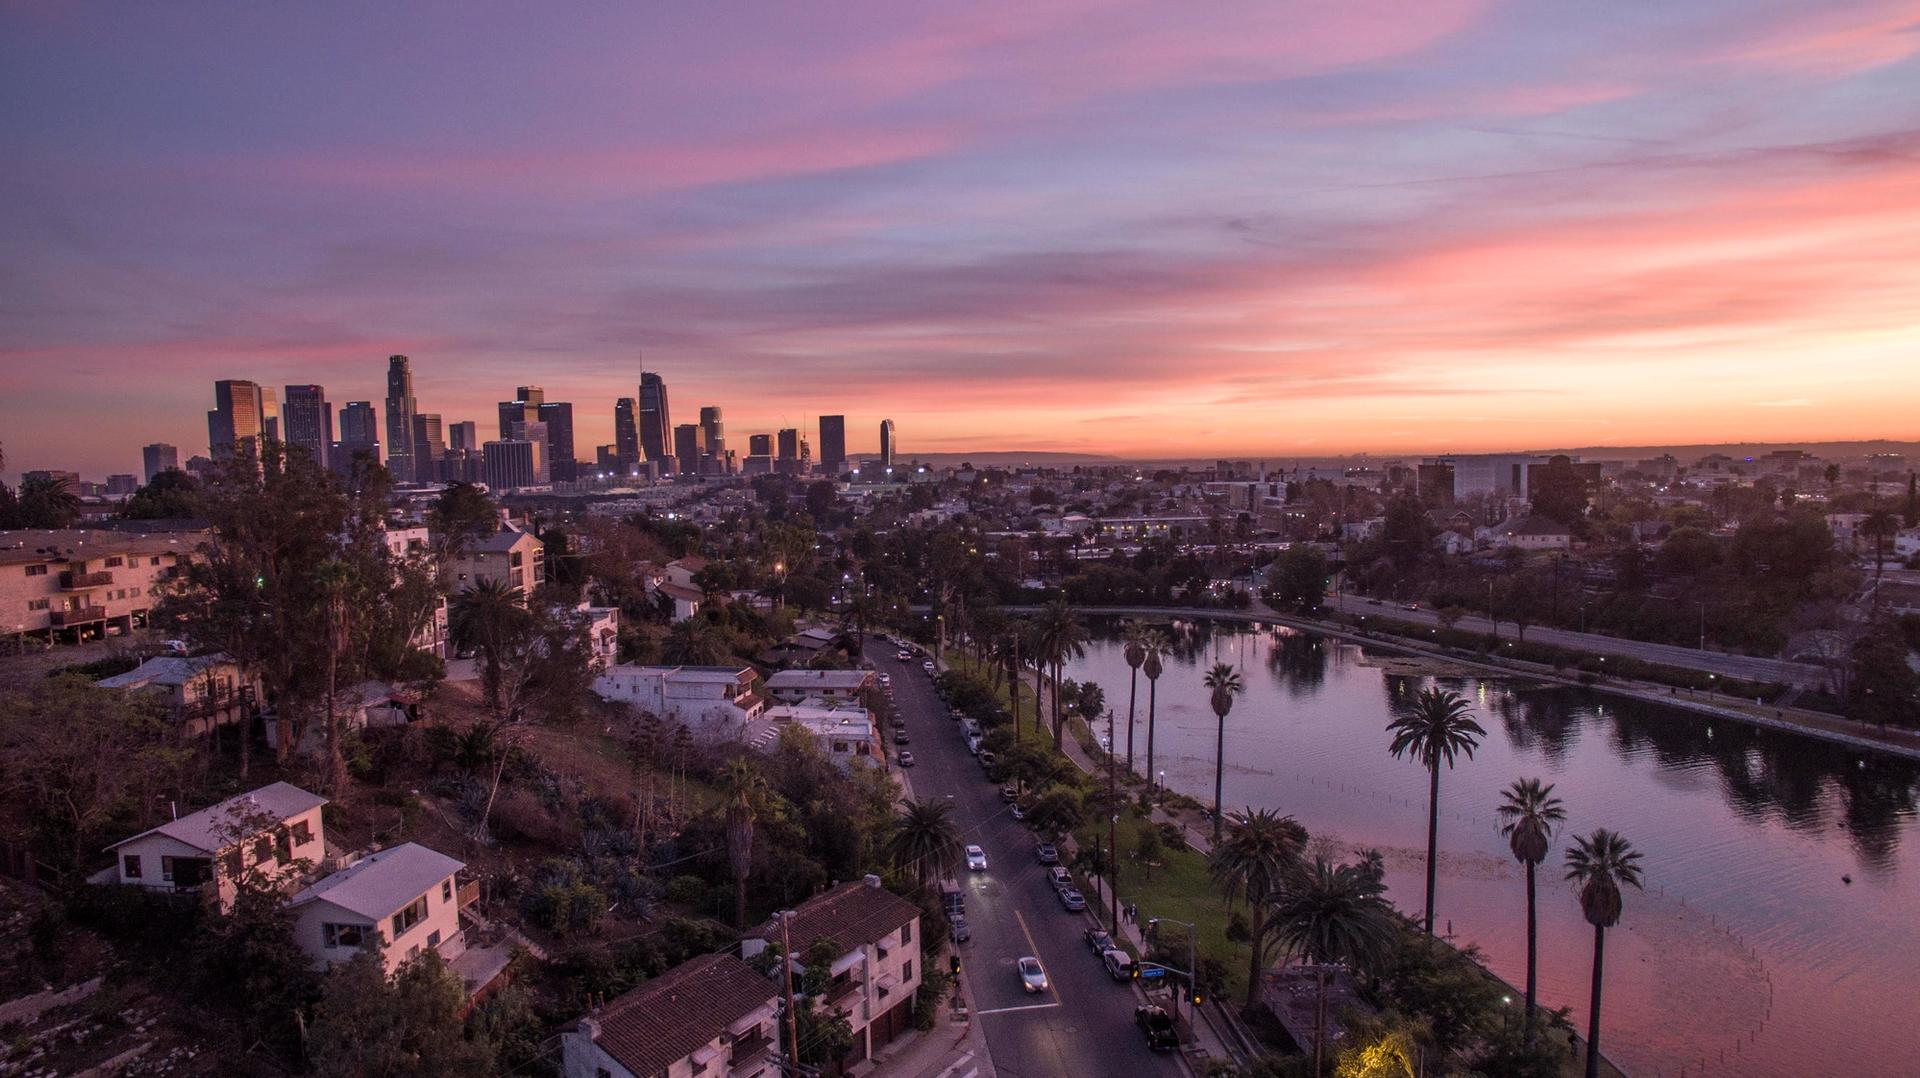 Echo Park Lake with the Downtown Los Angeles Skyline in the distance Photo: Adoramassey via Wikimedia Commons